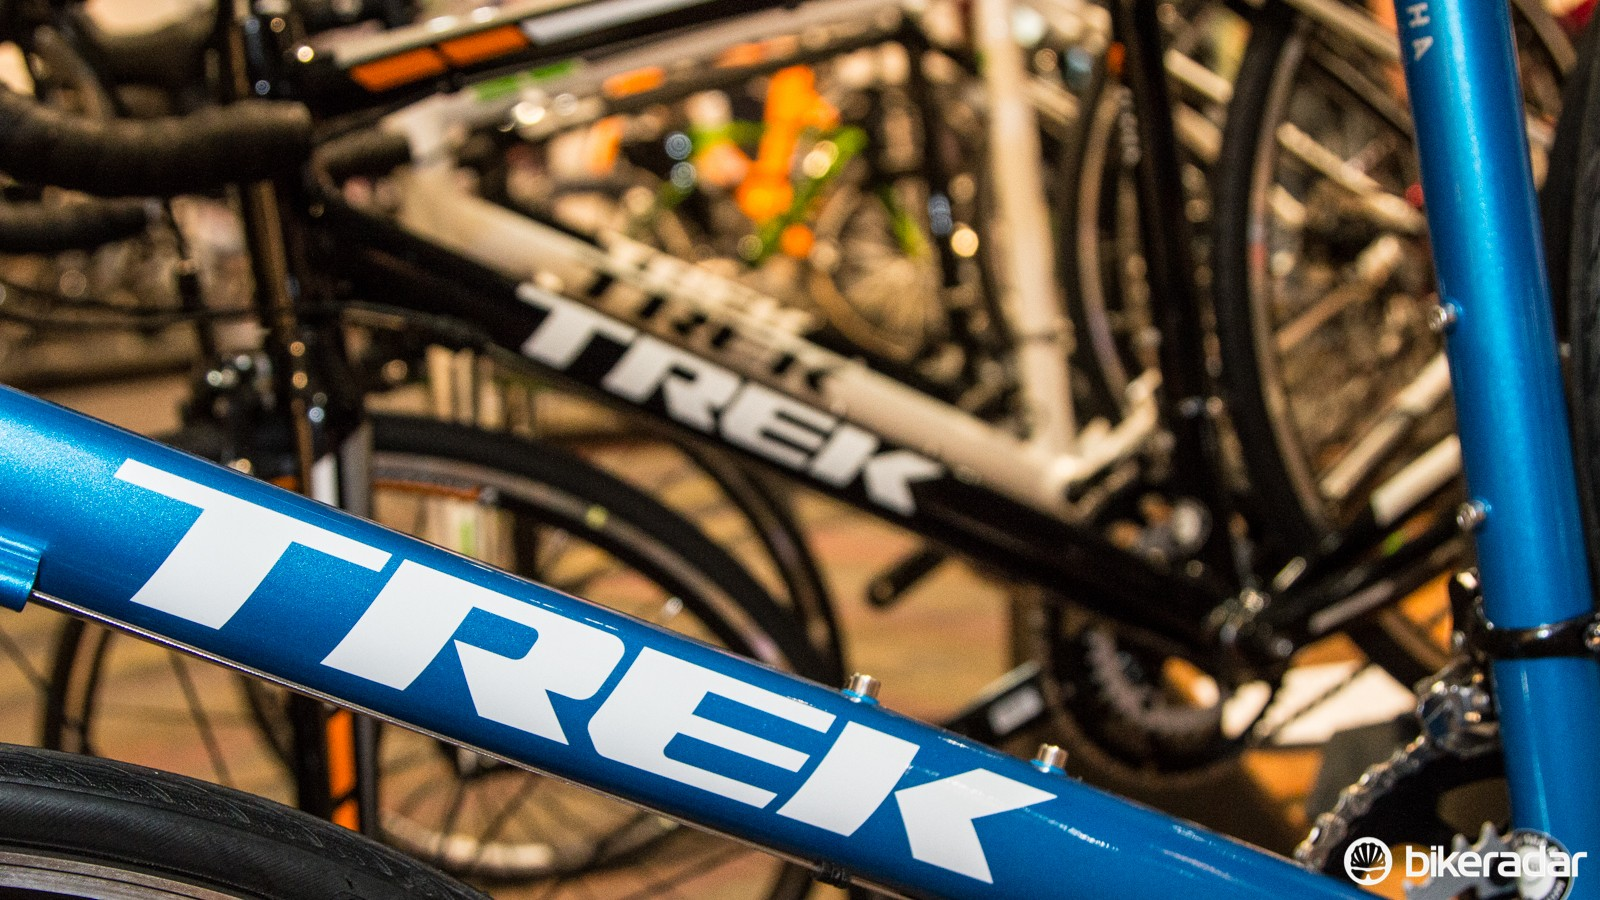 Trek Bikes has plenty going on for 2015, including new models and lots of refinement